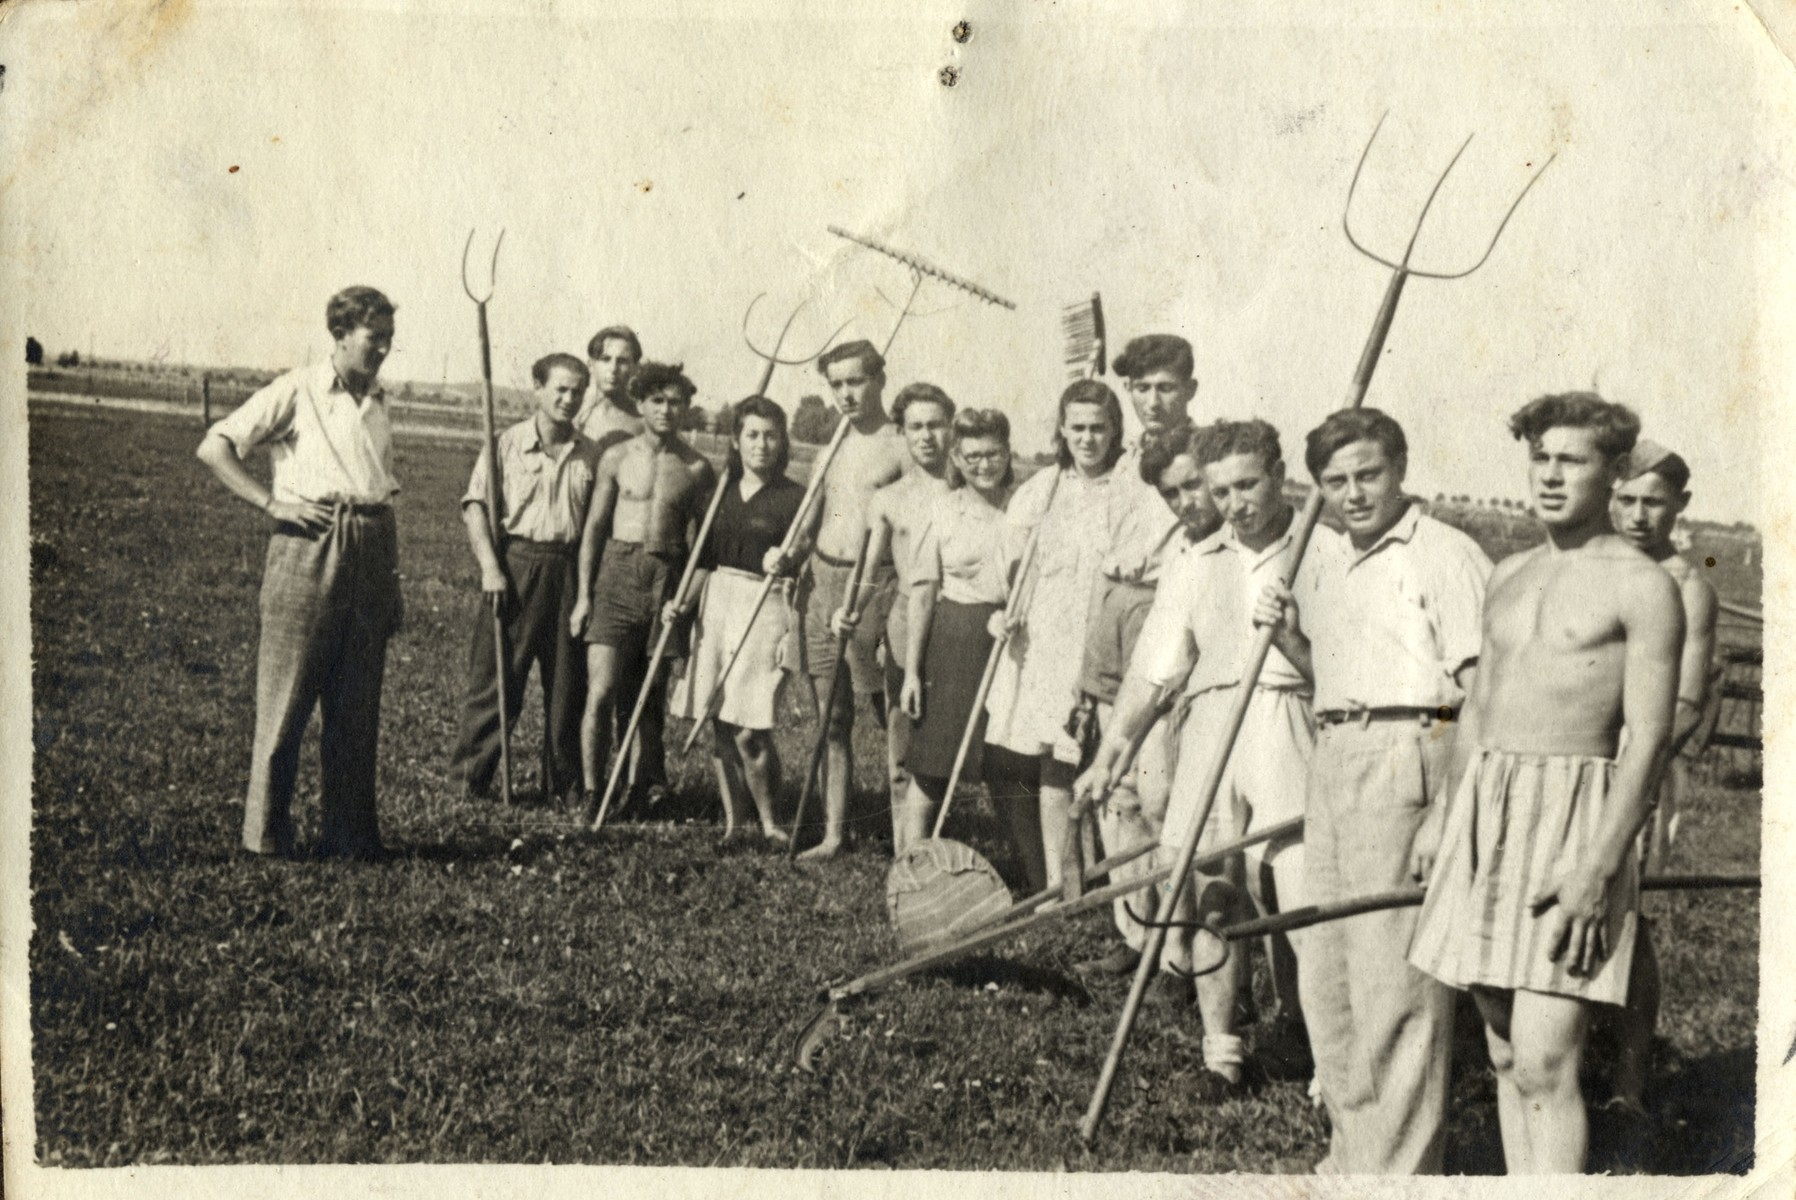 Group portrait of Jewish youth holding farming tools in a kibbutz hachshara in Germany.    Standing on the far left is probably the donor, Henryk Bergman.